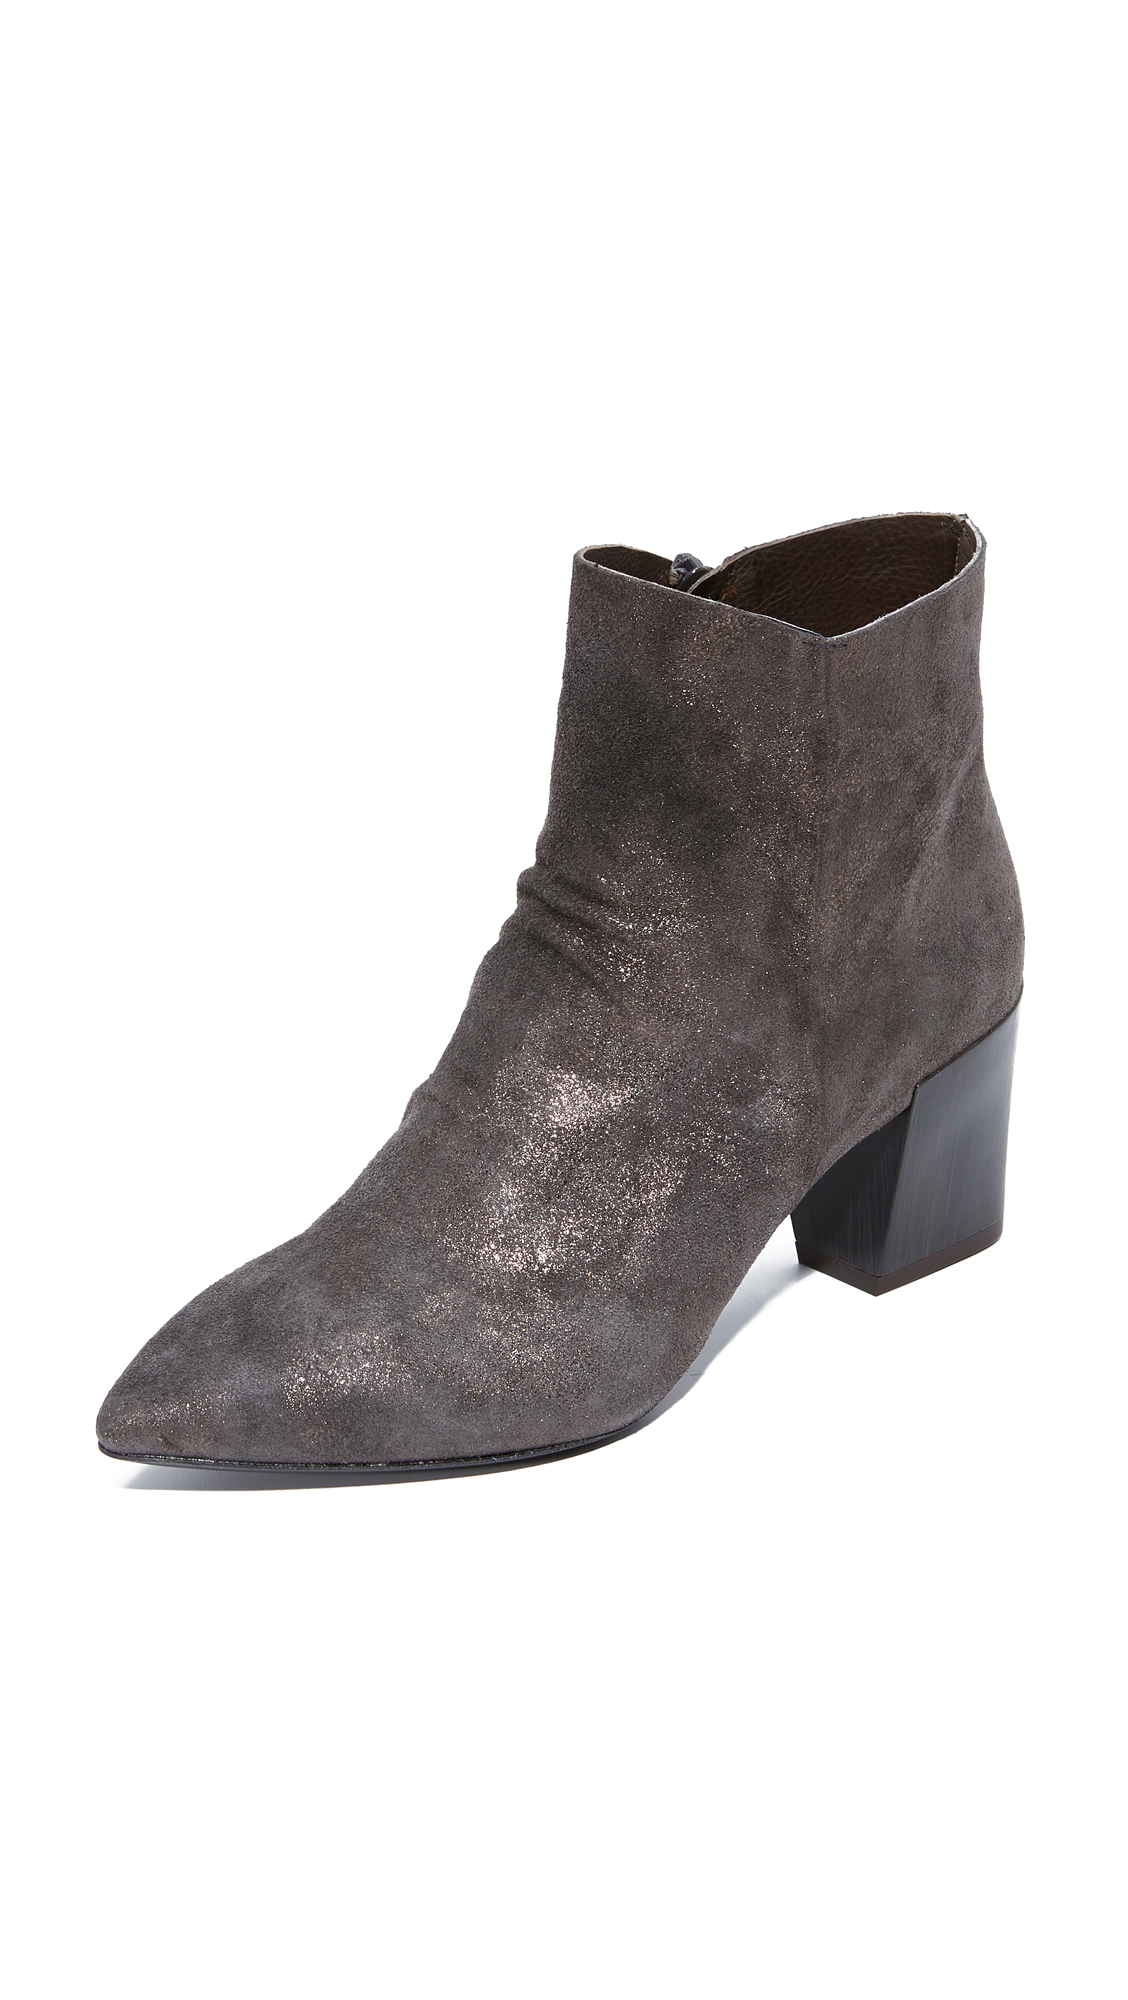 Coclico Shoes Joy Metallic Booties - Metal Anthracite